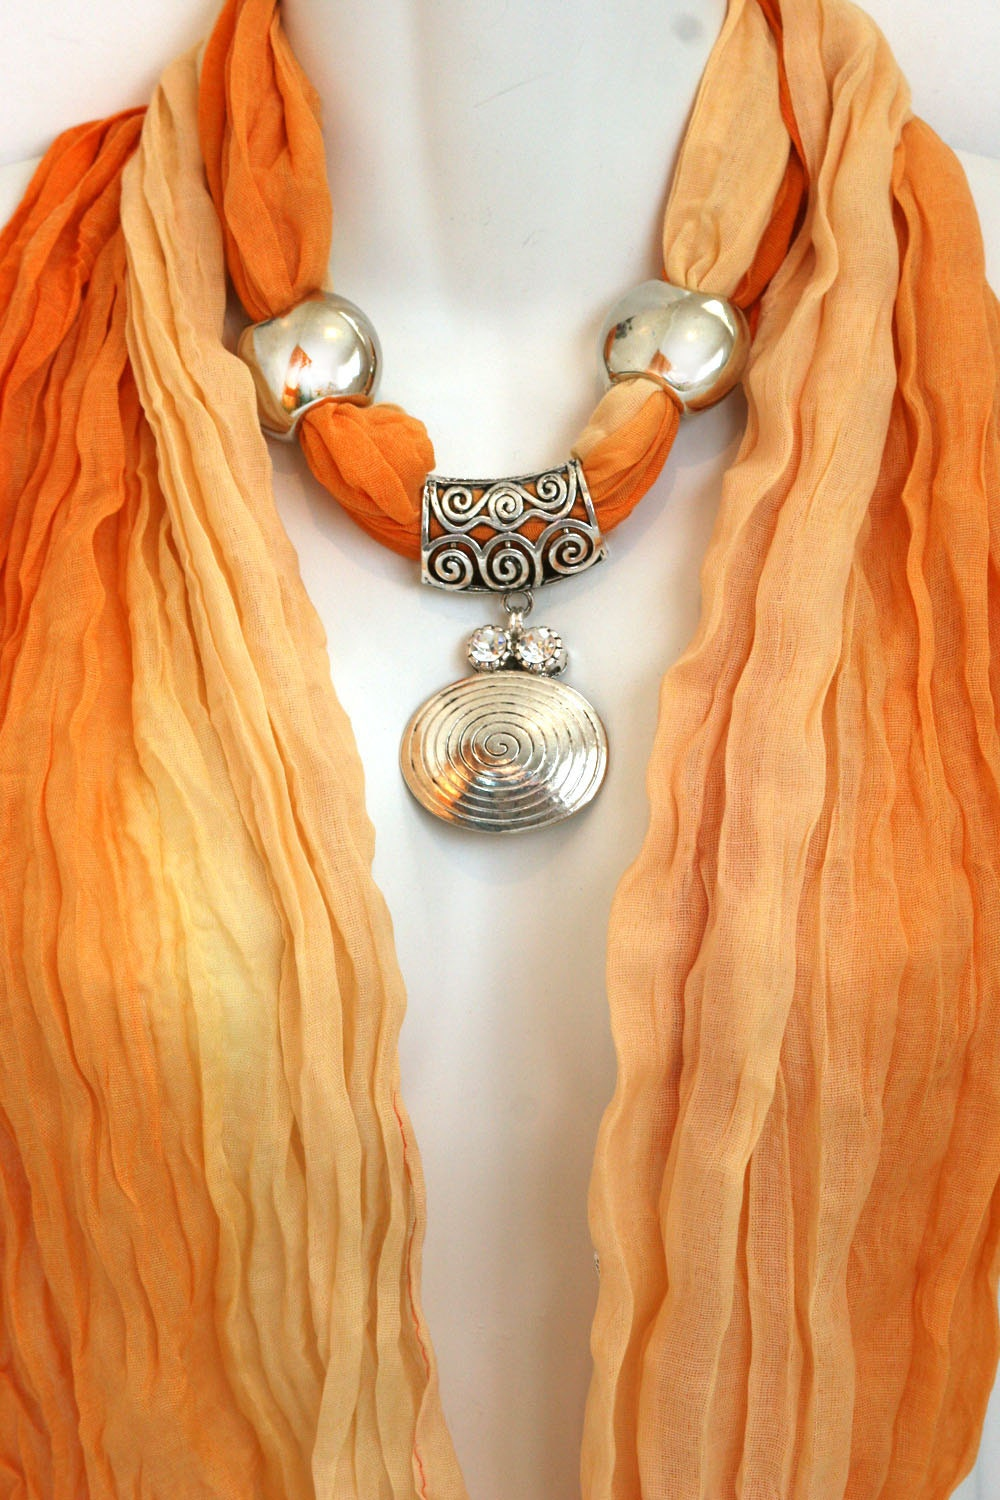 Orange Scarf With Jewelry Pendant Scarves Ombre Scarves Scarf Necklace Scarves With Jewelry On Them